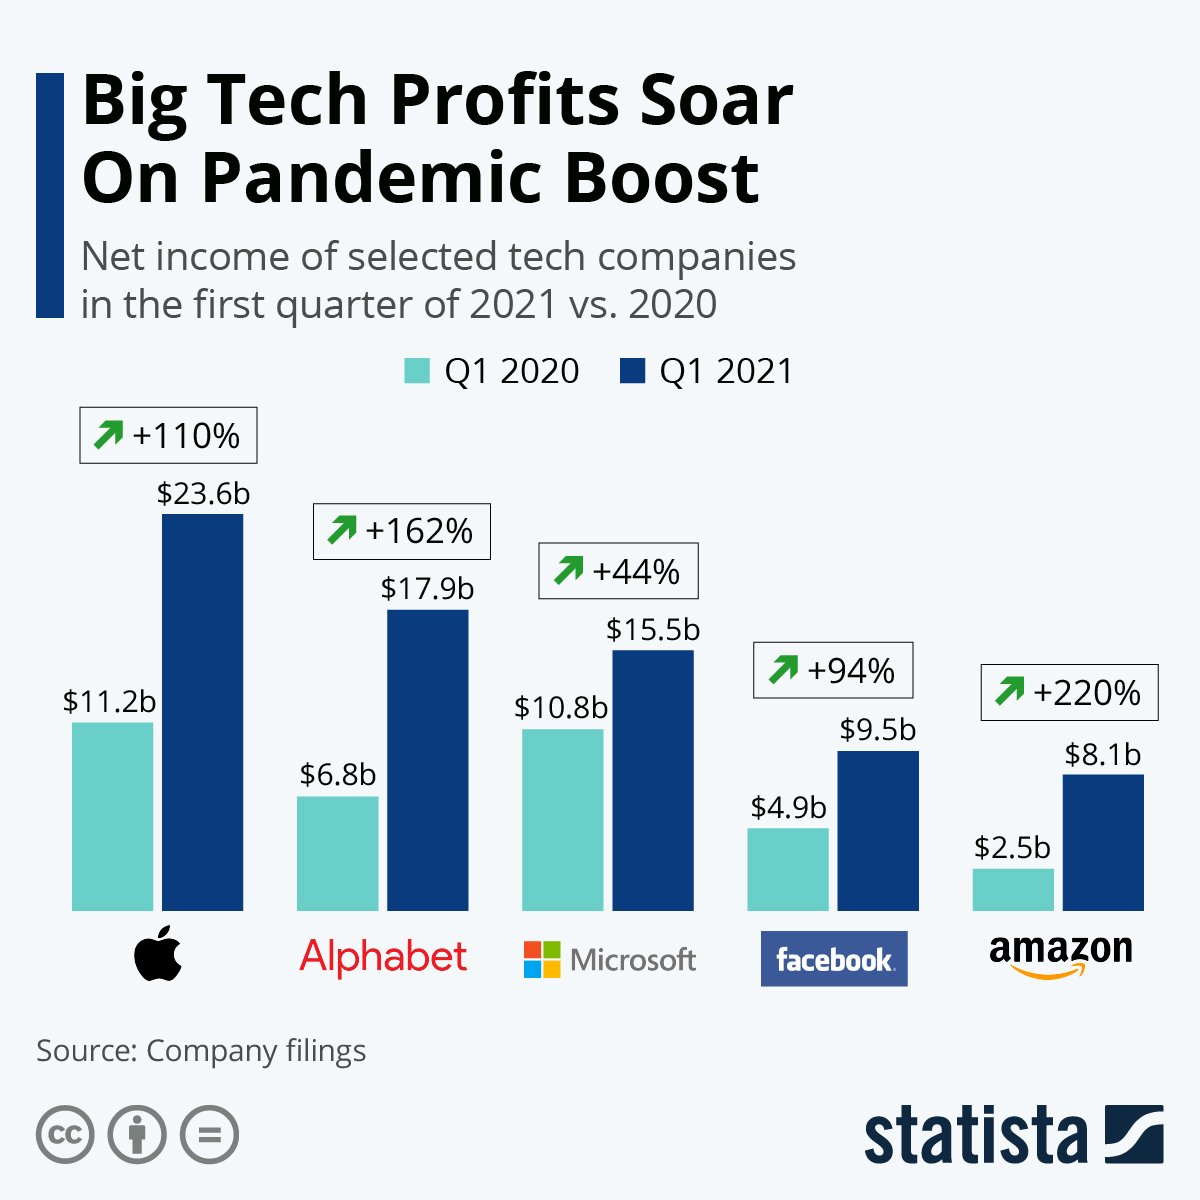 Tech profits soared after the pandemic boost